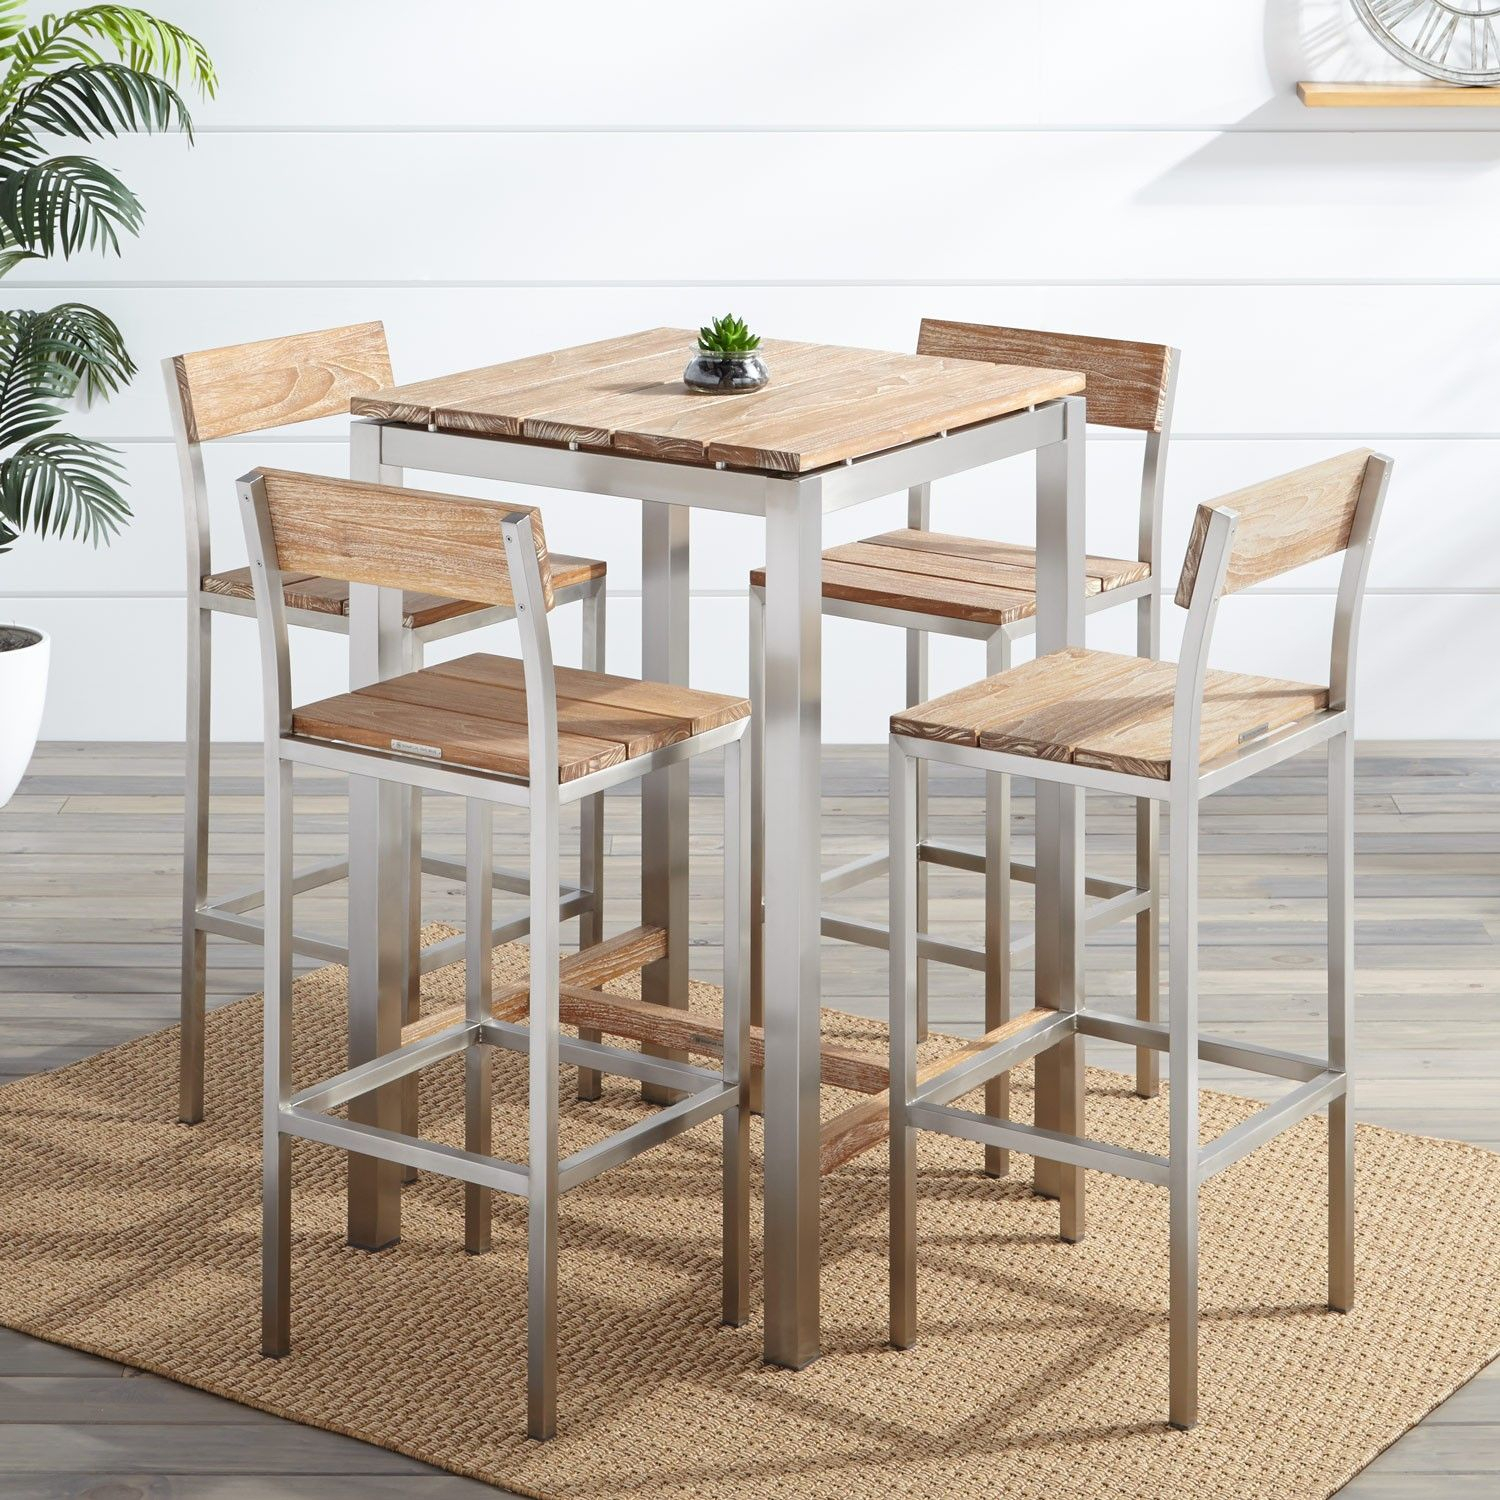 Macon 5 Piece Square Teak Outdoor Bar Table Set – Whitewash (#8 of 20)